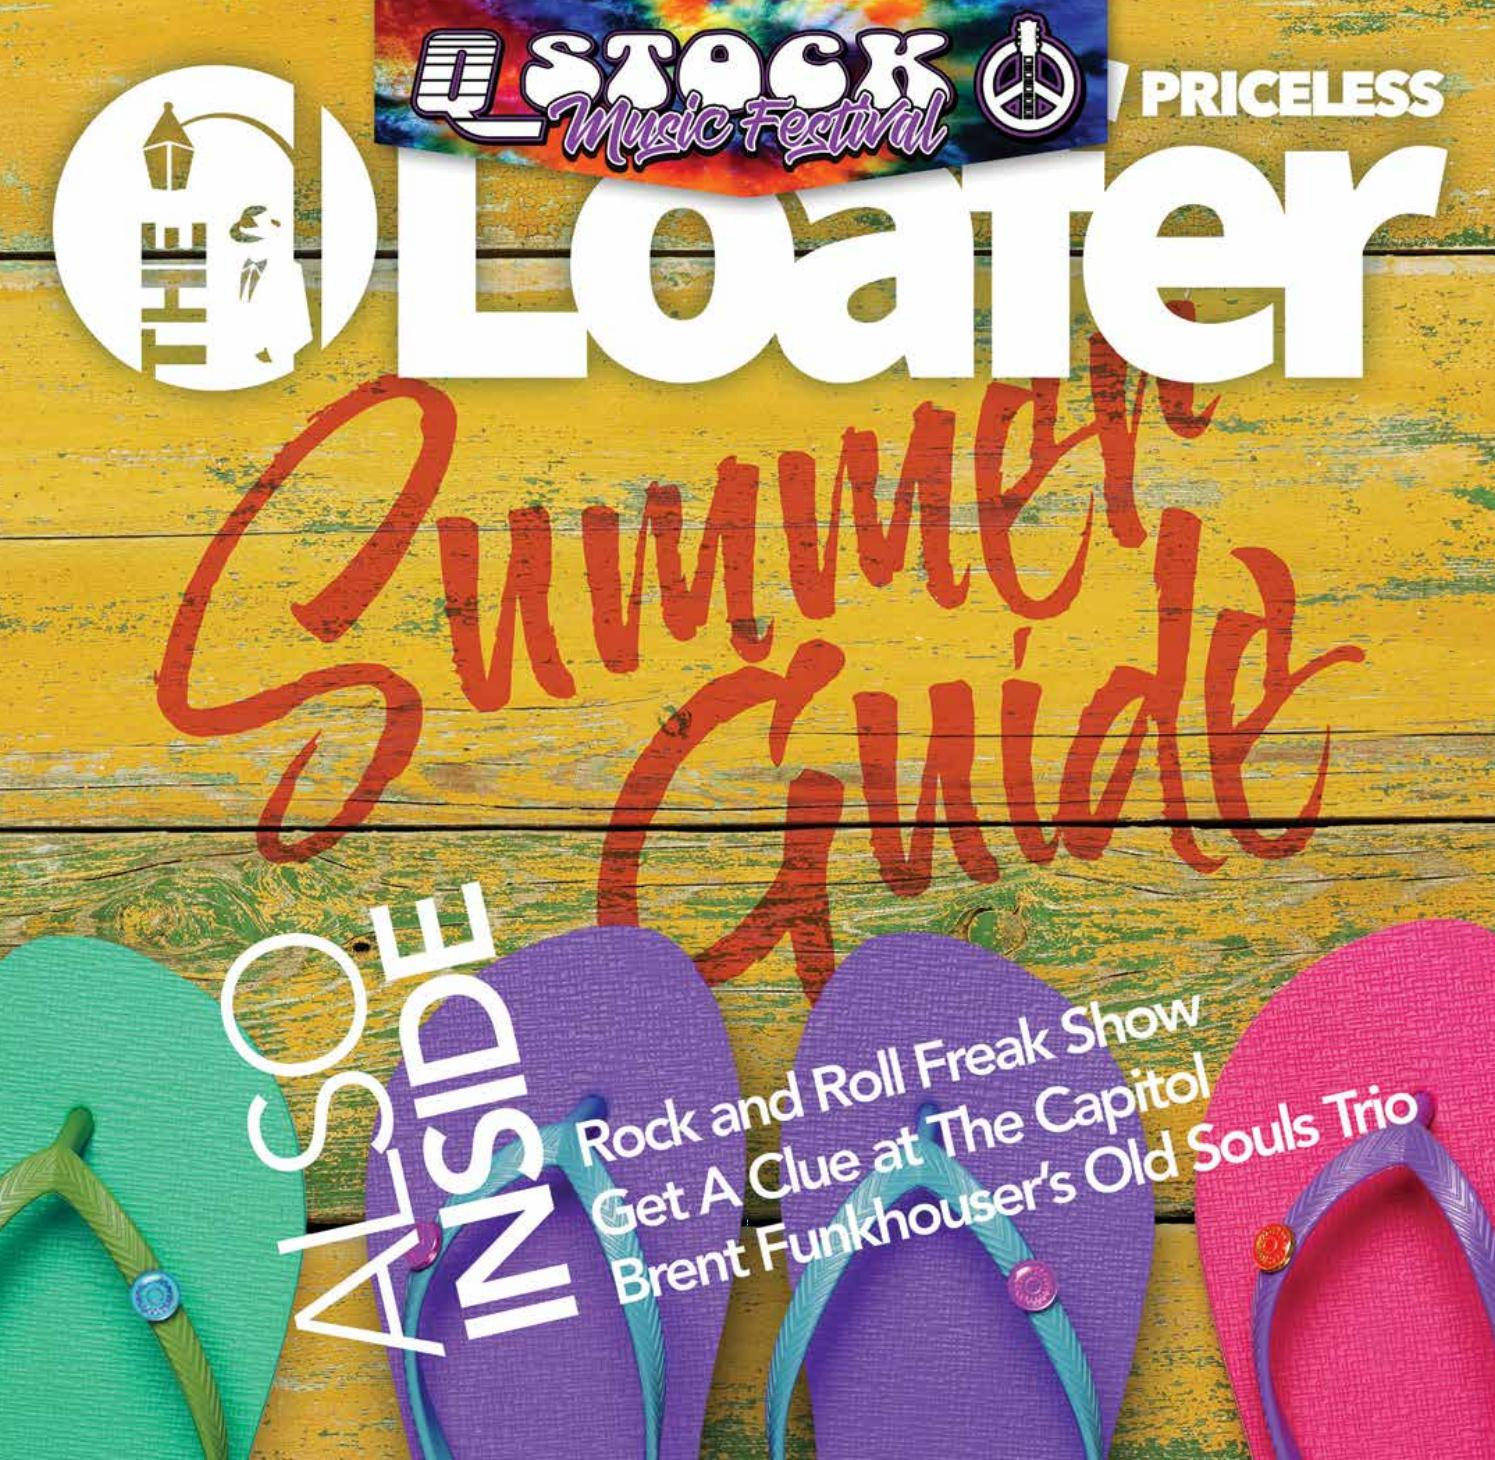 fa47ebd82a0b The Loafer May 23rd by The Loafer - issuu